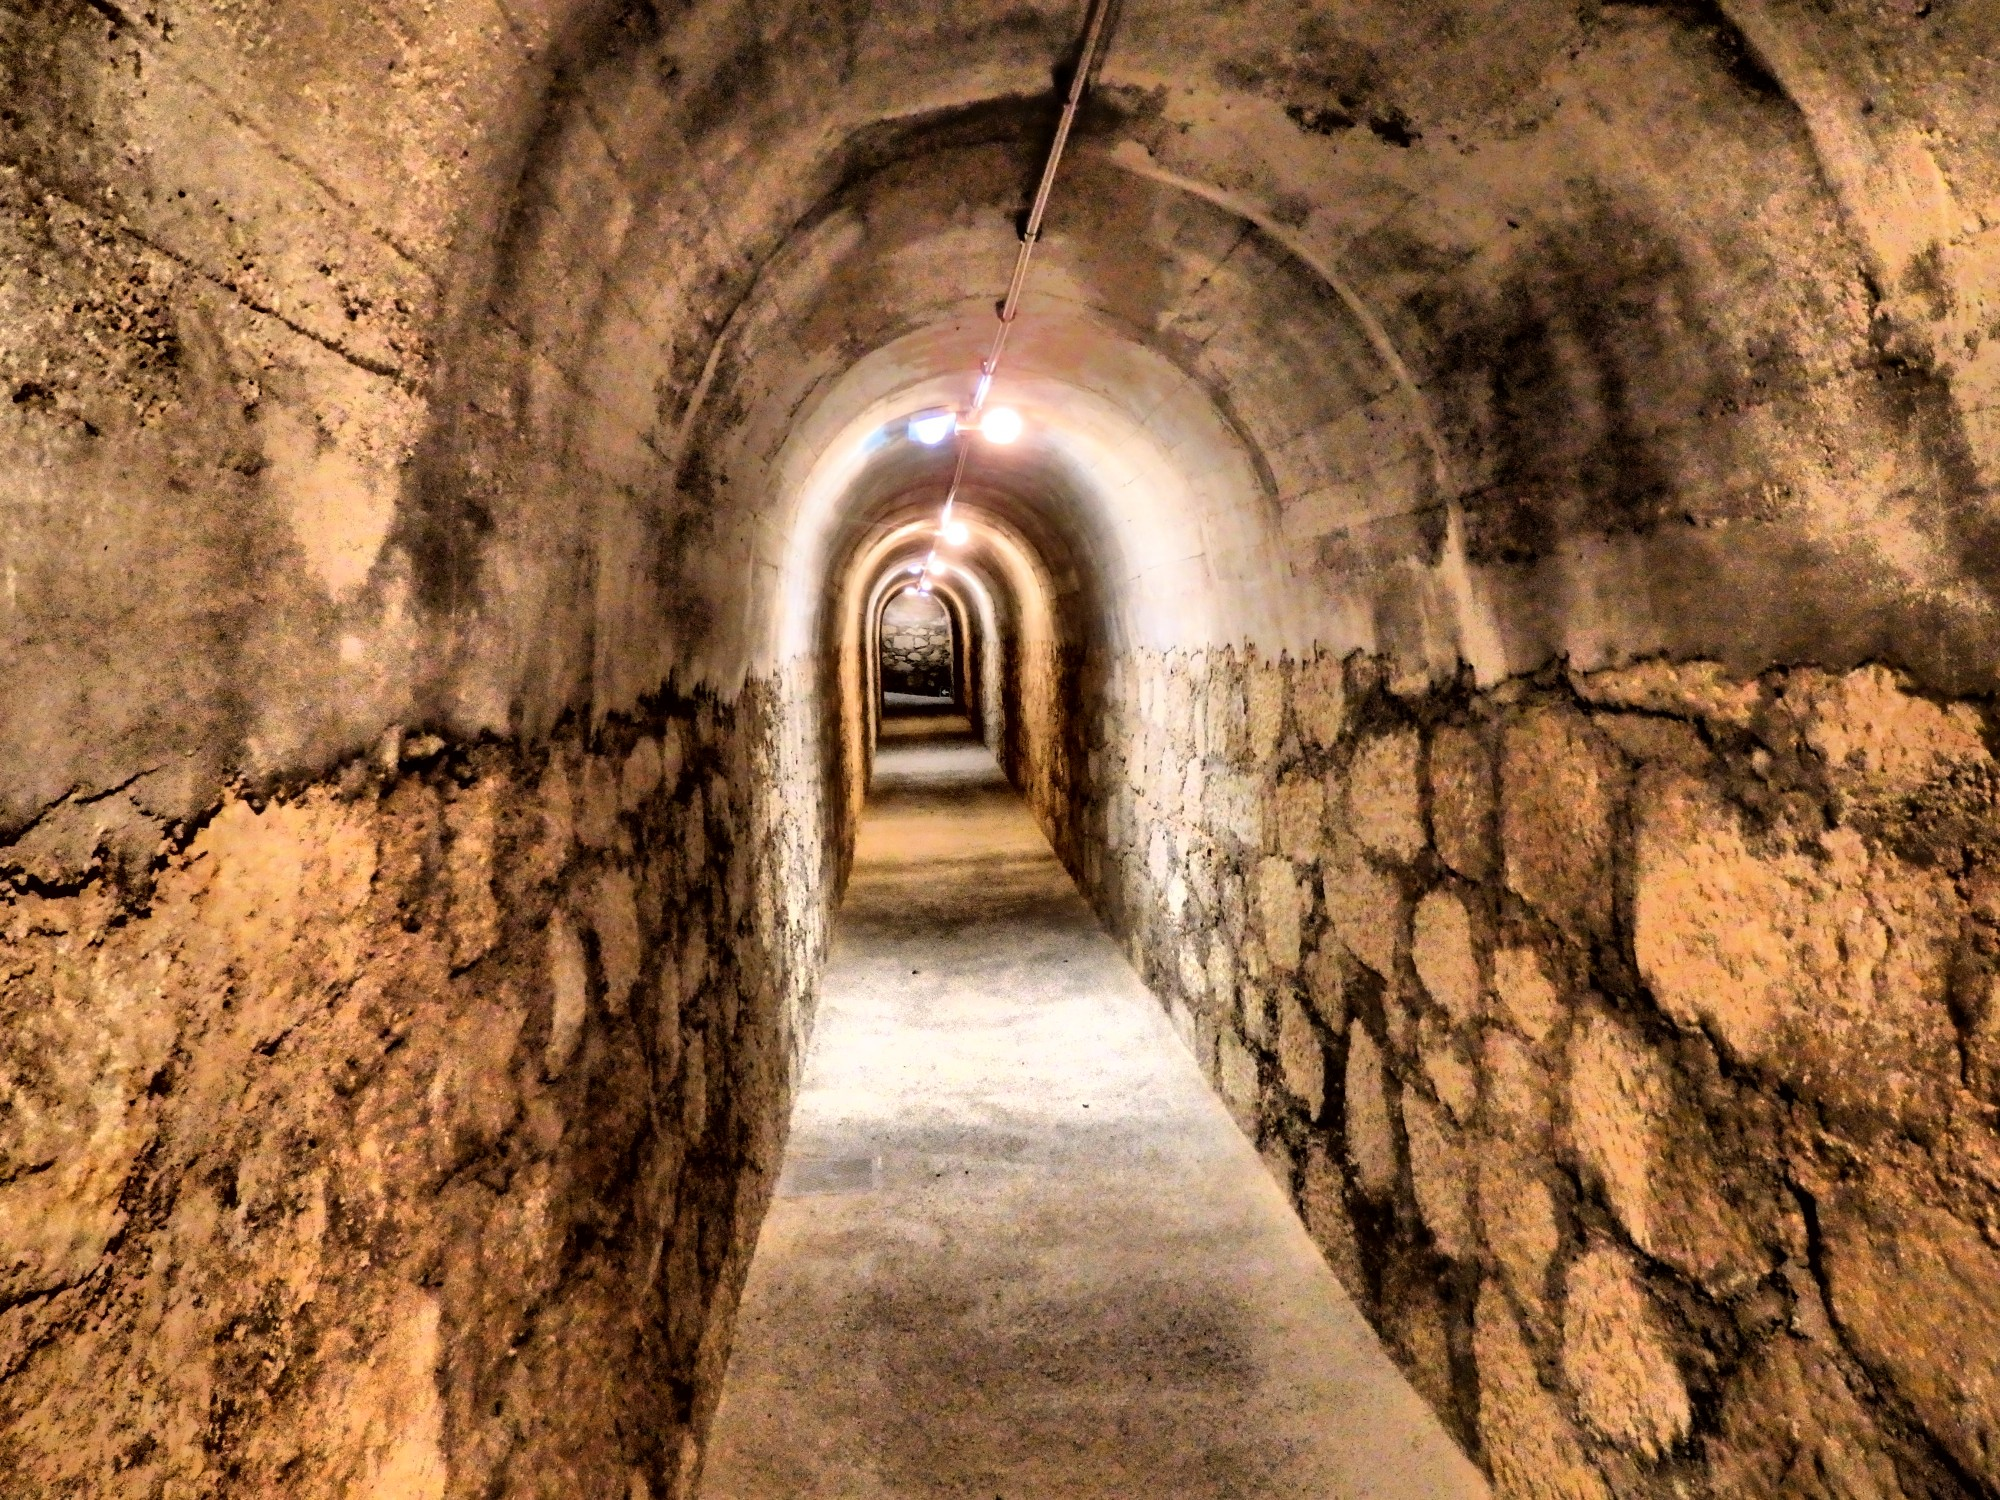 The entrance tunnel to the bomb shelter at Refugio de Cervantes in Alcoy, Costa Blanca, Spain